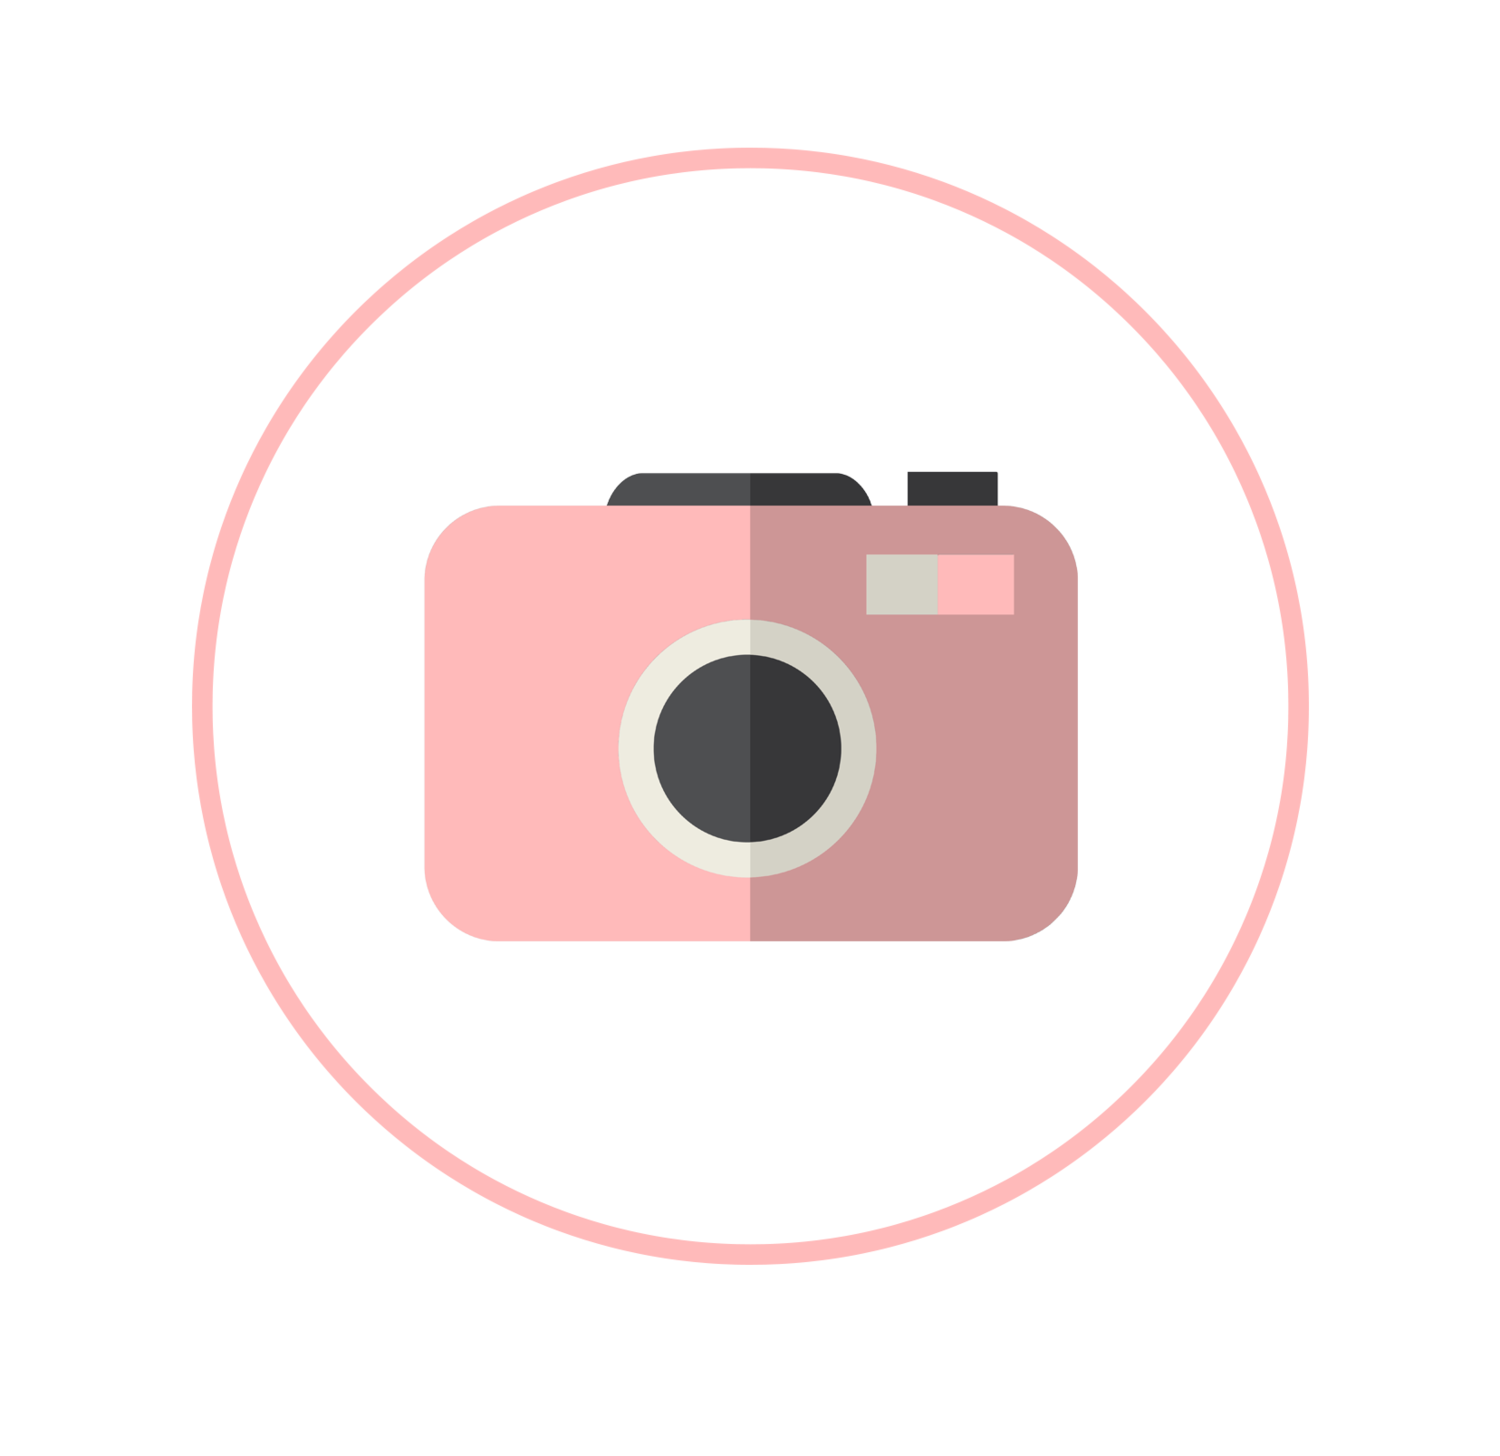 Content artfully social camerapng. Photographer clipart pink camera